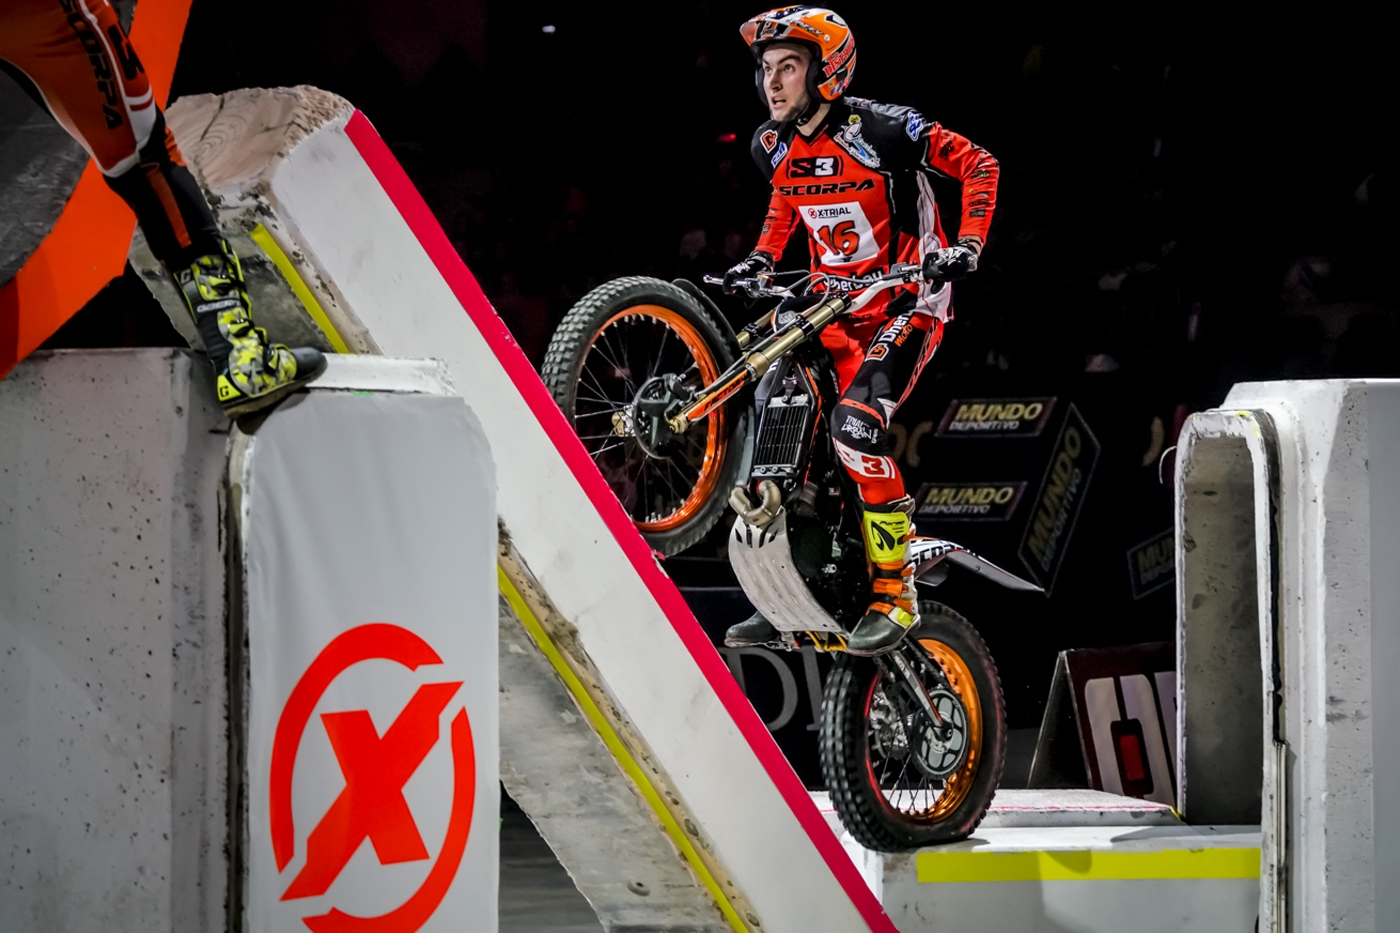 Marseille returns to the X-Trial World Championship